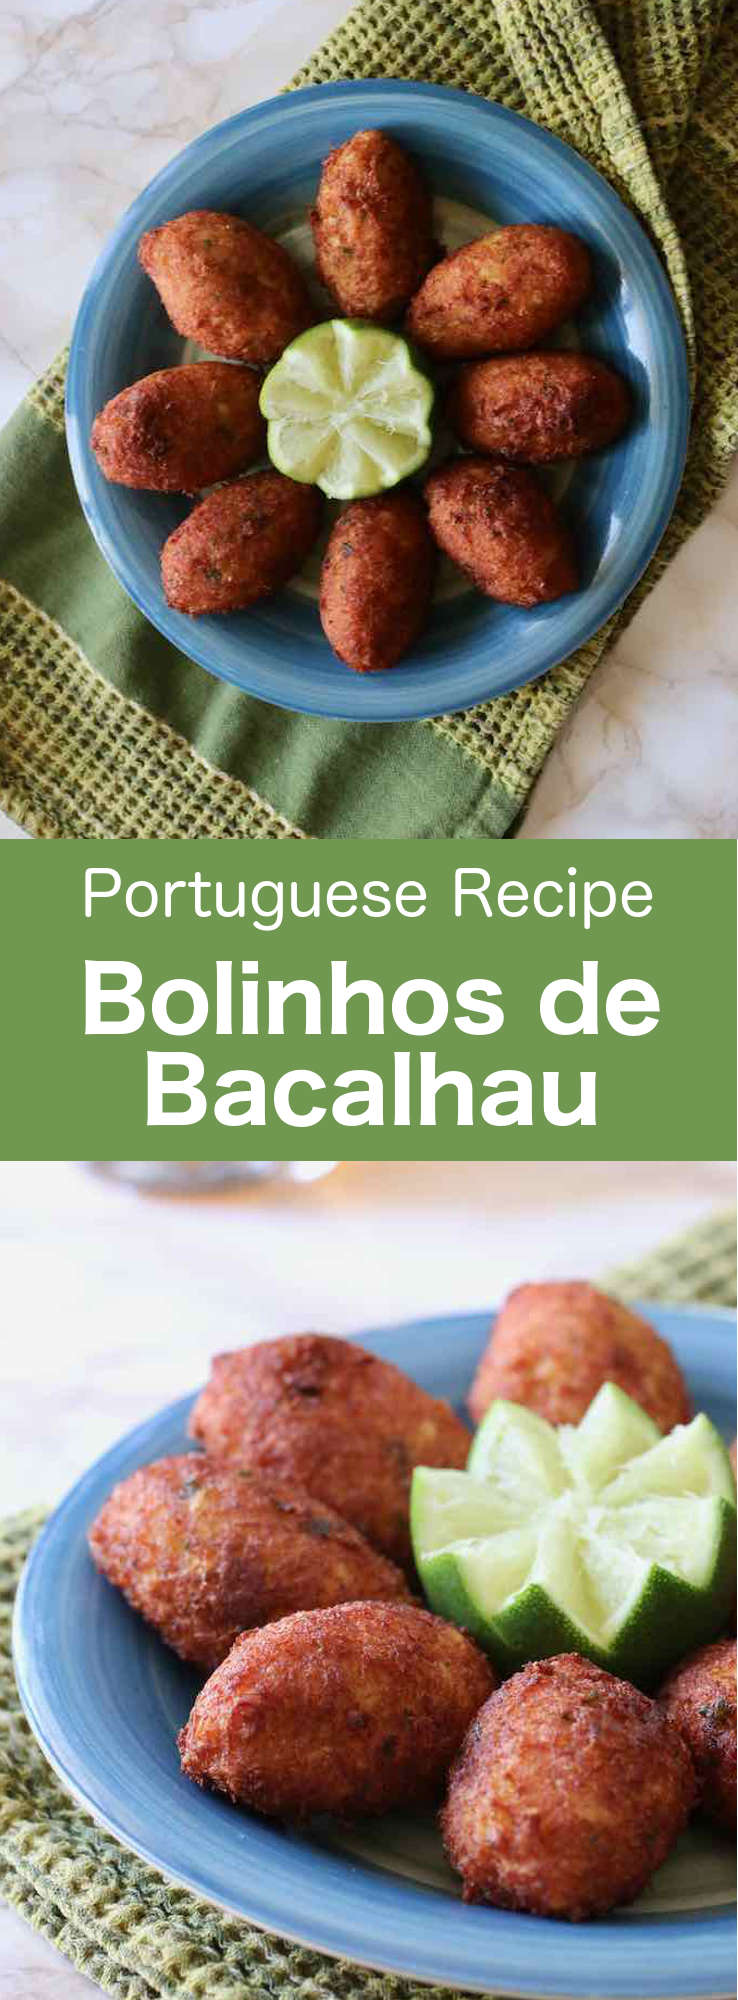 Bolinhos de bacalhau are delicious traditional fish cakes from Portugal. Those torpedo-shaped fish patties are prepared with salt cod, mashed potatoes, egg, onion and parsley. #Portugal #PortugueseRecipe #FishCake #WorldCuisine #196flavors